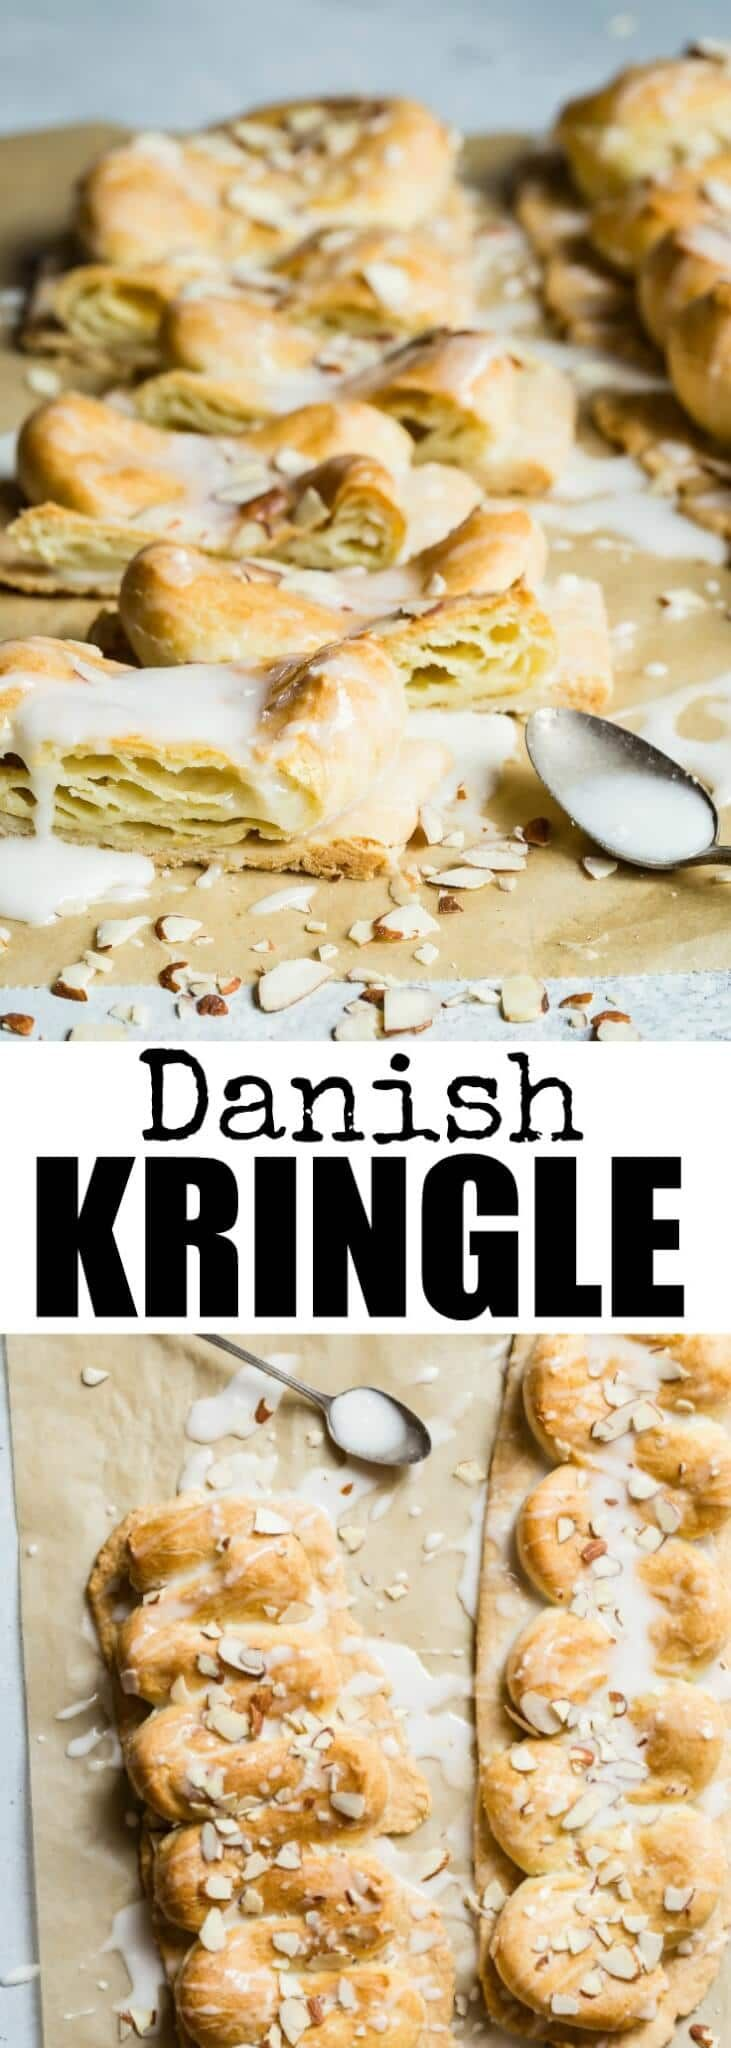 Meet Wisconsin's official state pastry! This Danish Kringle Recipe tastes EXACTLY like the real thing, but it has been adapted so you can make it at home. via @culinaryhill